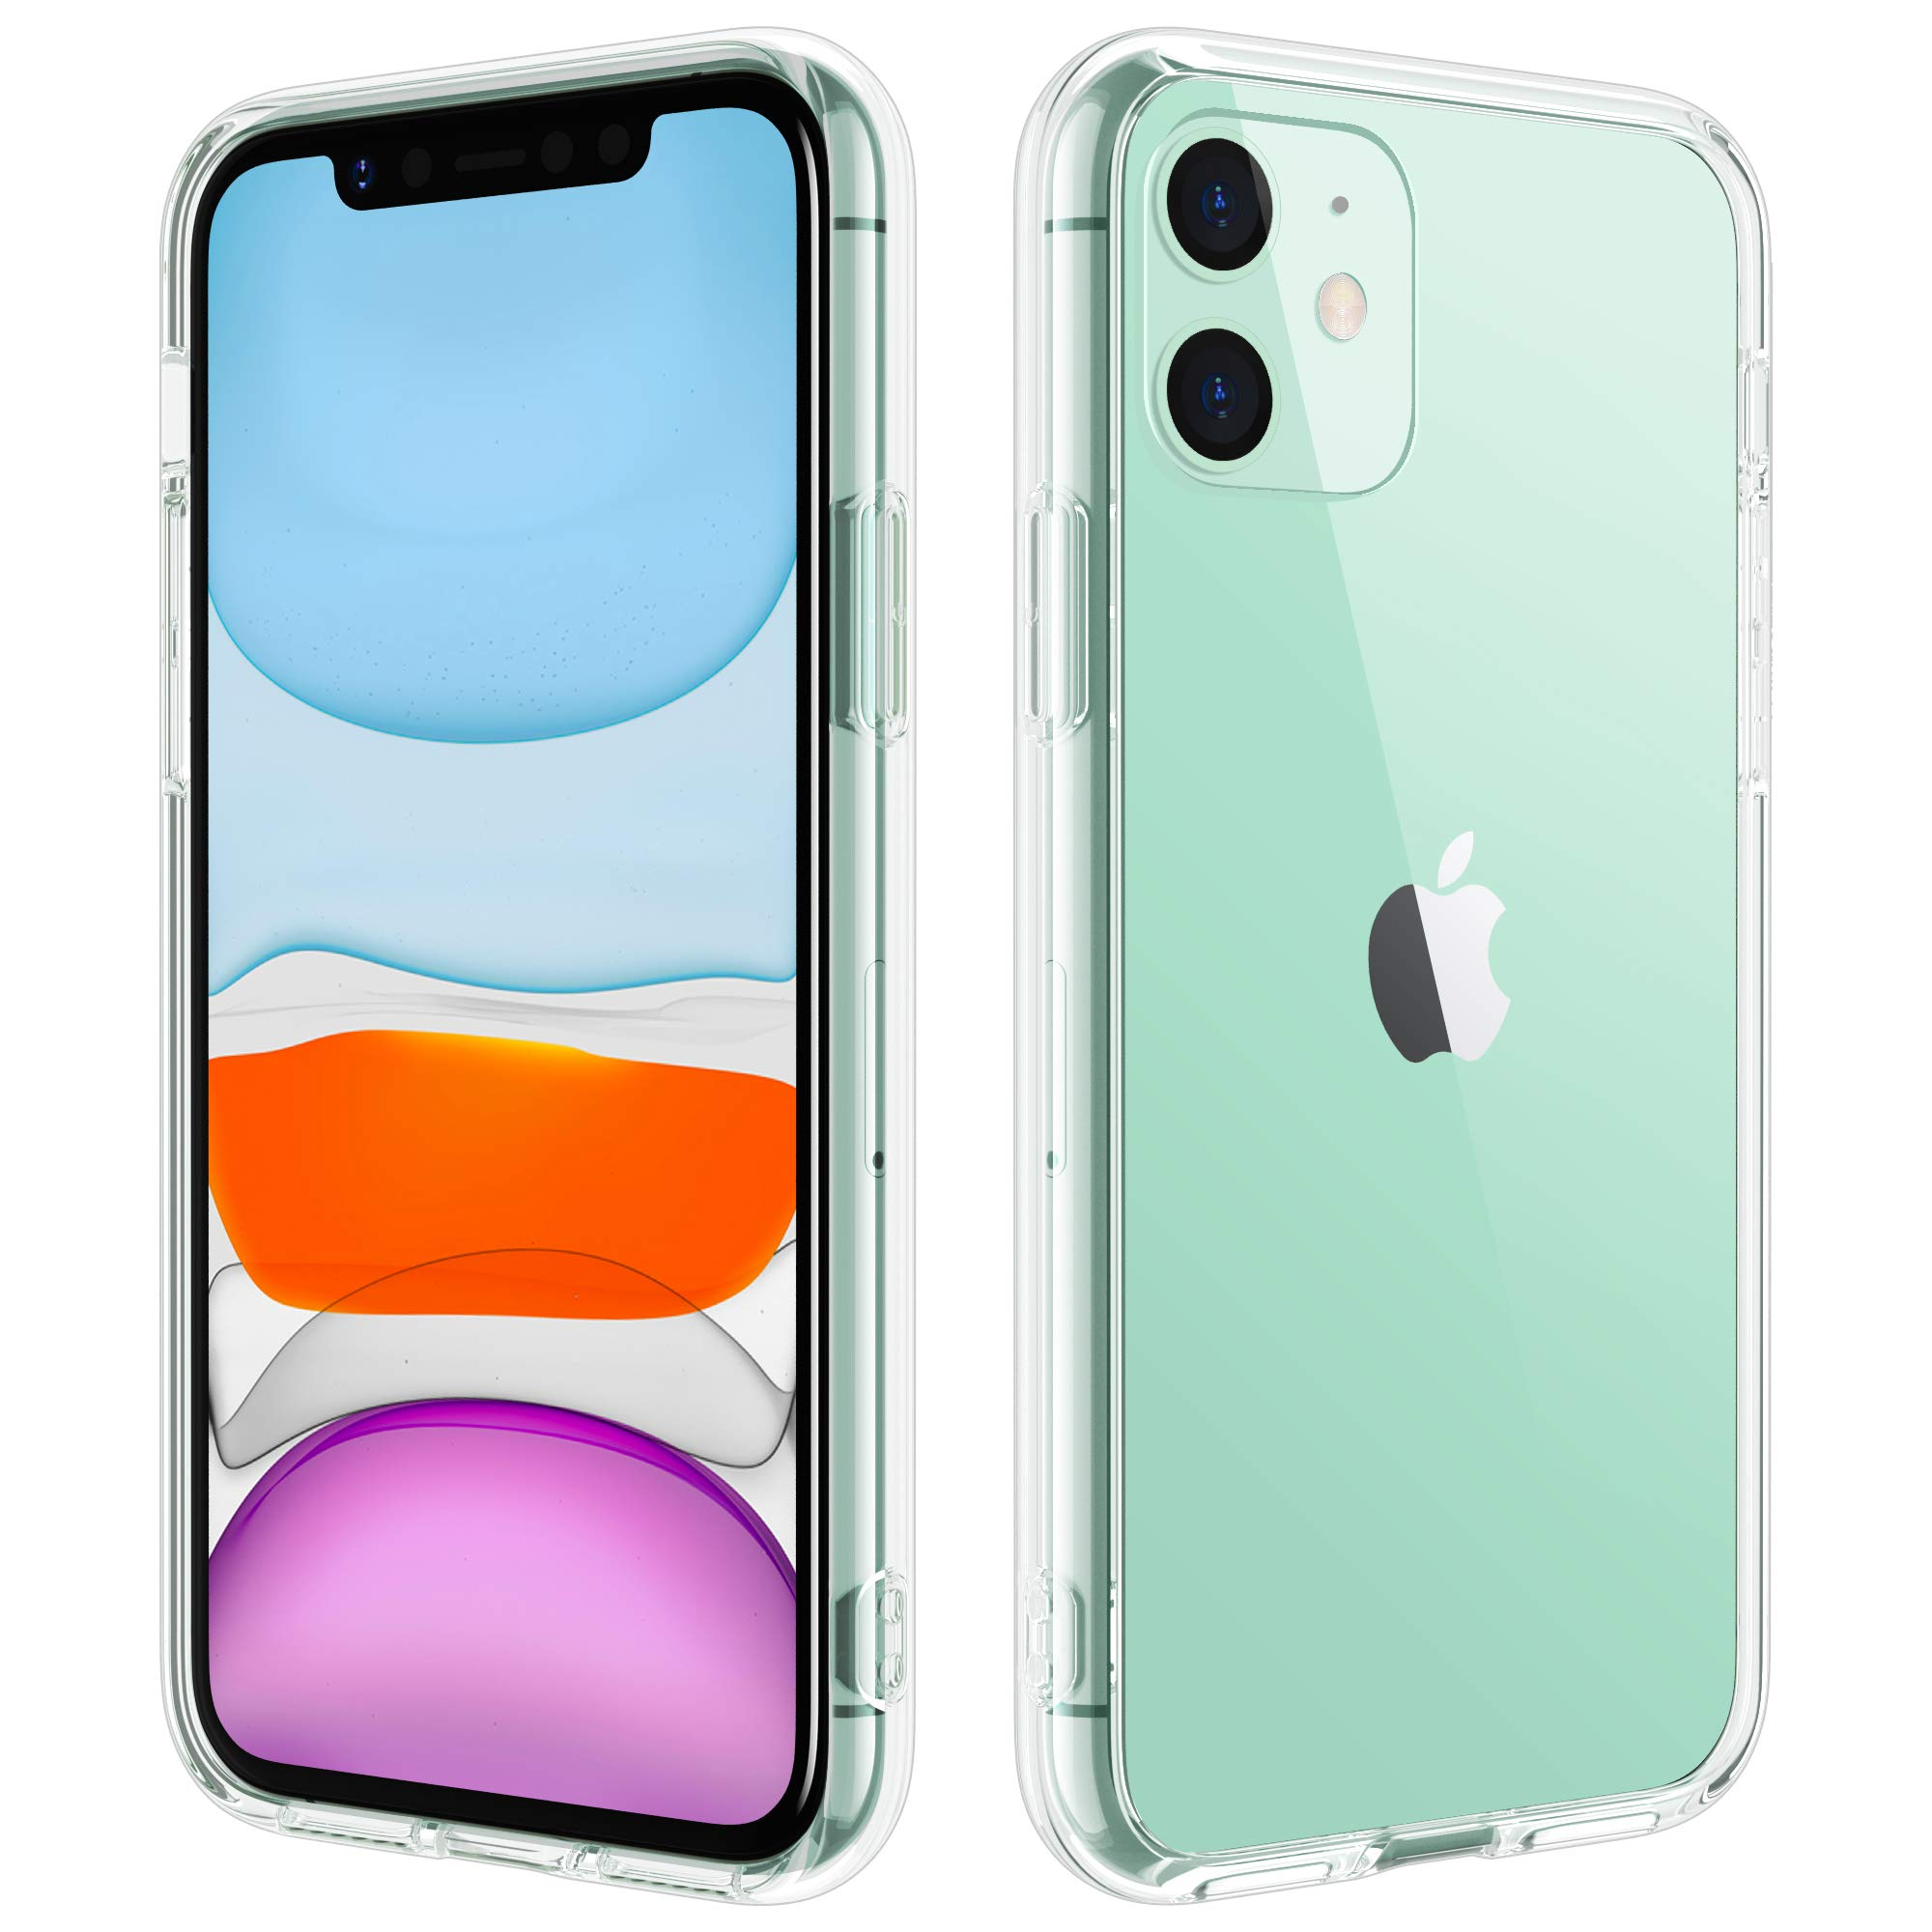 DEFACE for iPhone 11 Case Clear Tempered Glass Back Cover with TPU Frame Scratch-Resistant Anti-Yellowing Shock Absorption Protective Case for iPhone 11 6.1